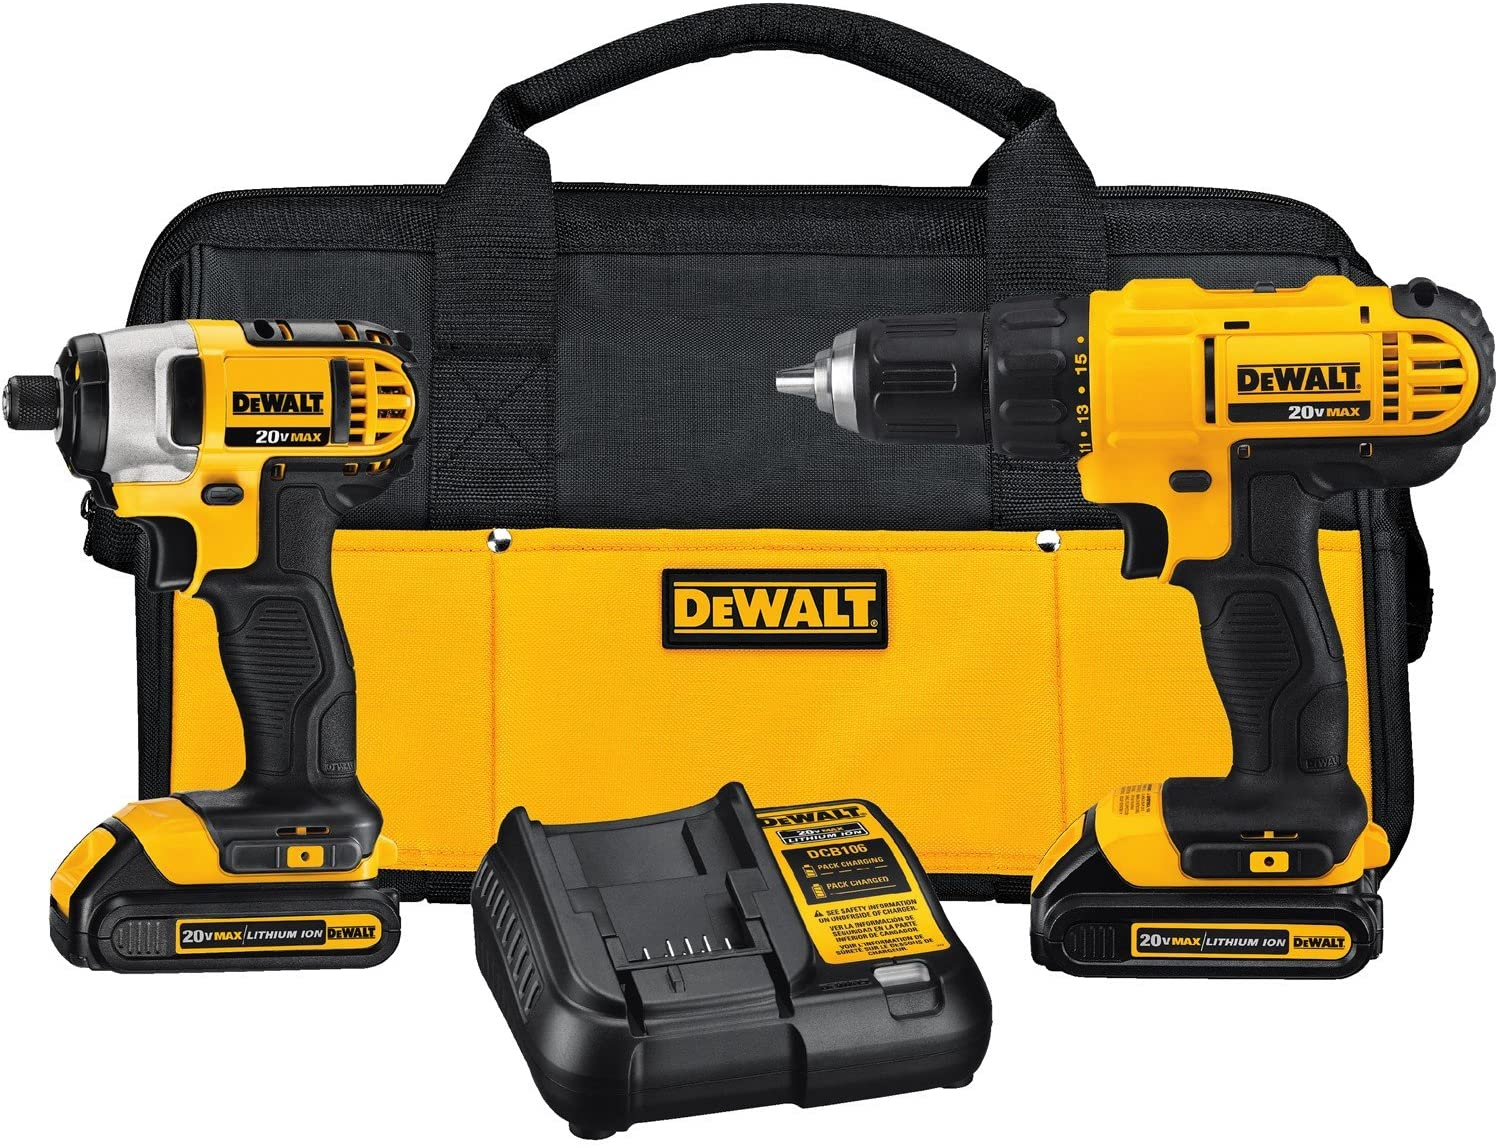 """Even the DEWALT DCK240C2 20v Lithium Drill Driver/Impact Combo package (1.5Ah) is included in this DCF885 20V MAX lithium-ion 1/4 in. streamlined impression Driver (5.55"""" leading to rear ) and lightweight (2.8 pounds ) ), built to squeeze in tight locations. This device provides one-handed loading 1/4"""" hex toss takes inch"""" piece suggestions, and also has a three LED lighting ring using 20-minute wait to give reliability minus shadows. A belt hook can be contained for portability onto the worksite. Even the DCD771C2 20V MAX lithium-ion Compact Drill/Driver can also be lightweight and compact, built to squeeze into limited locations. This specific drill/driver provides a superior end engine which produces 300 devices liter outside (UWO) of electrical strength potential, allowing to get a broad scope of the software. This machine also has a highspeed transmission, which produces two rates (0-450 along with 1,500 rpm) to get a wide selection of drilling and fastening software. Even the 1/2"""" one sleeve ratcheting chuck offers tight little grasping power, and also, the ergonomic management produces control and comfort. Both programs are a part of this DEWALT 20-Volt MAX platform and so, therefore, are harmonious with 20-Volt MAX batteries, accessories, and chargers. Features: (inch ) DCF885 20v MAX Lithium impression Notebook, also (inch ) DCD771 20v MAX Lithium Drill/Driver, (two ) 20-Volt MAX lithium-ion 1.5Ah battery packs, (inch ) 20-Volt MAX charger and also builder tote."""